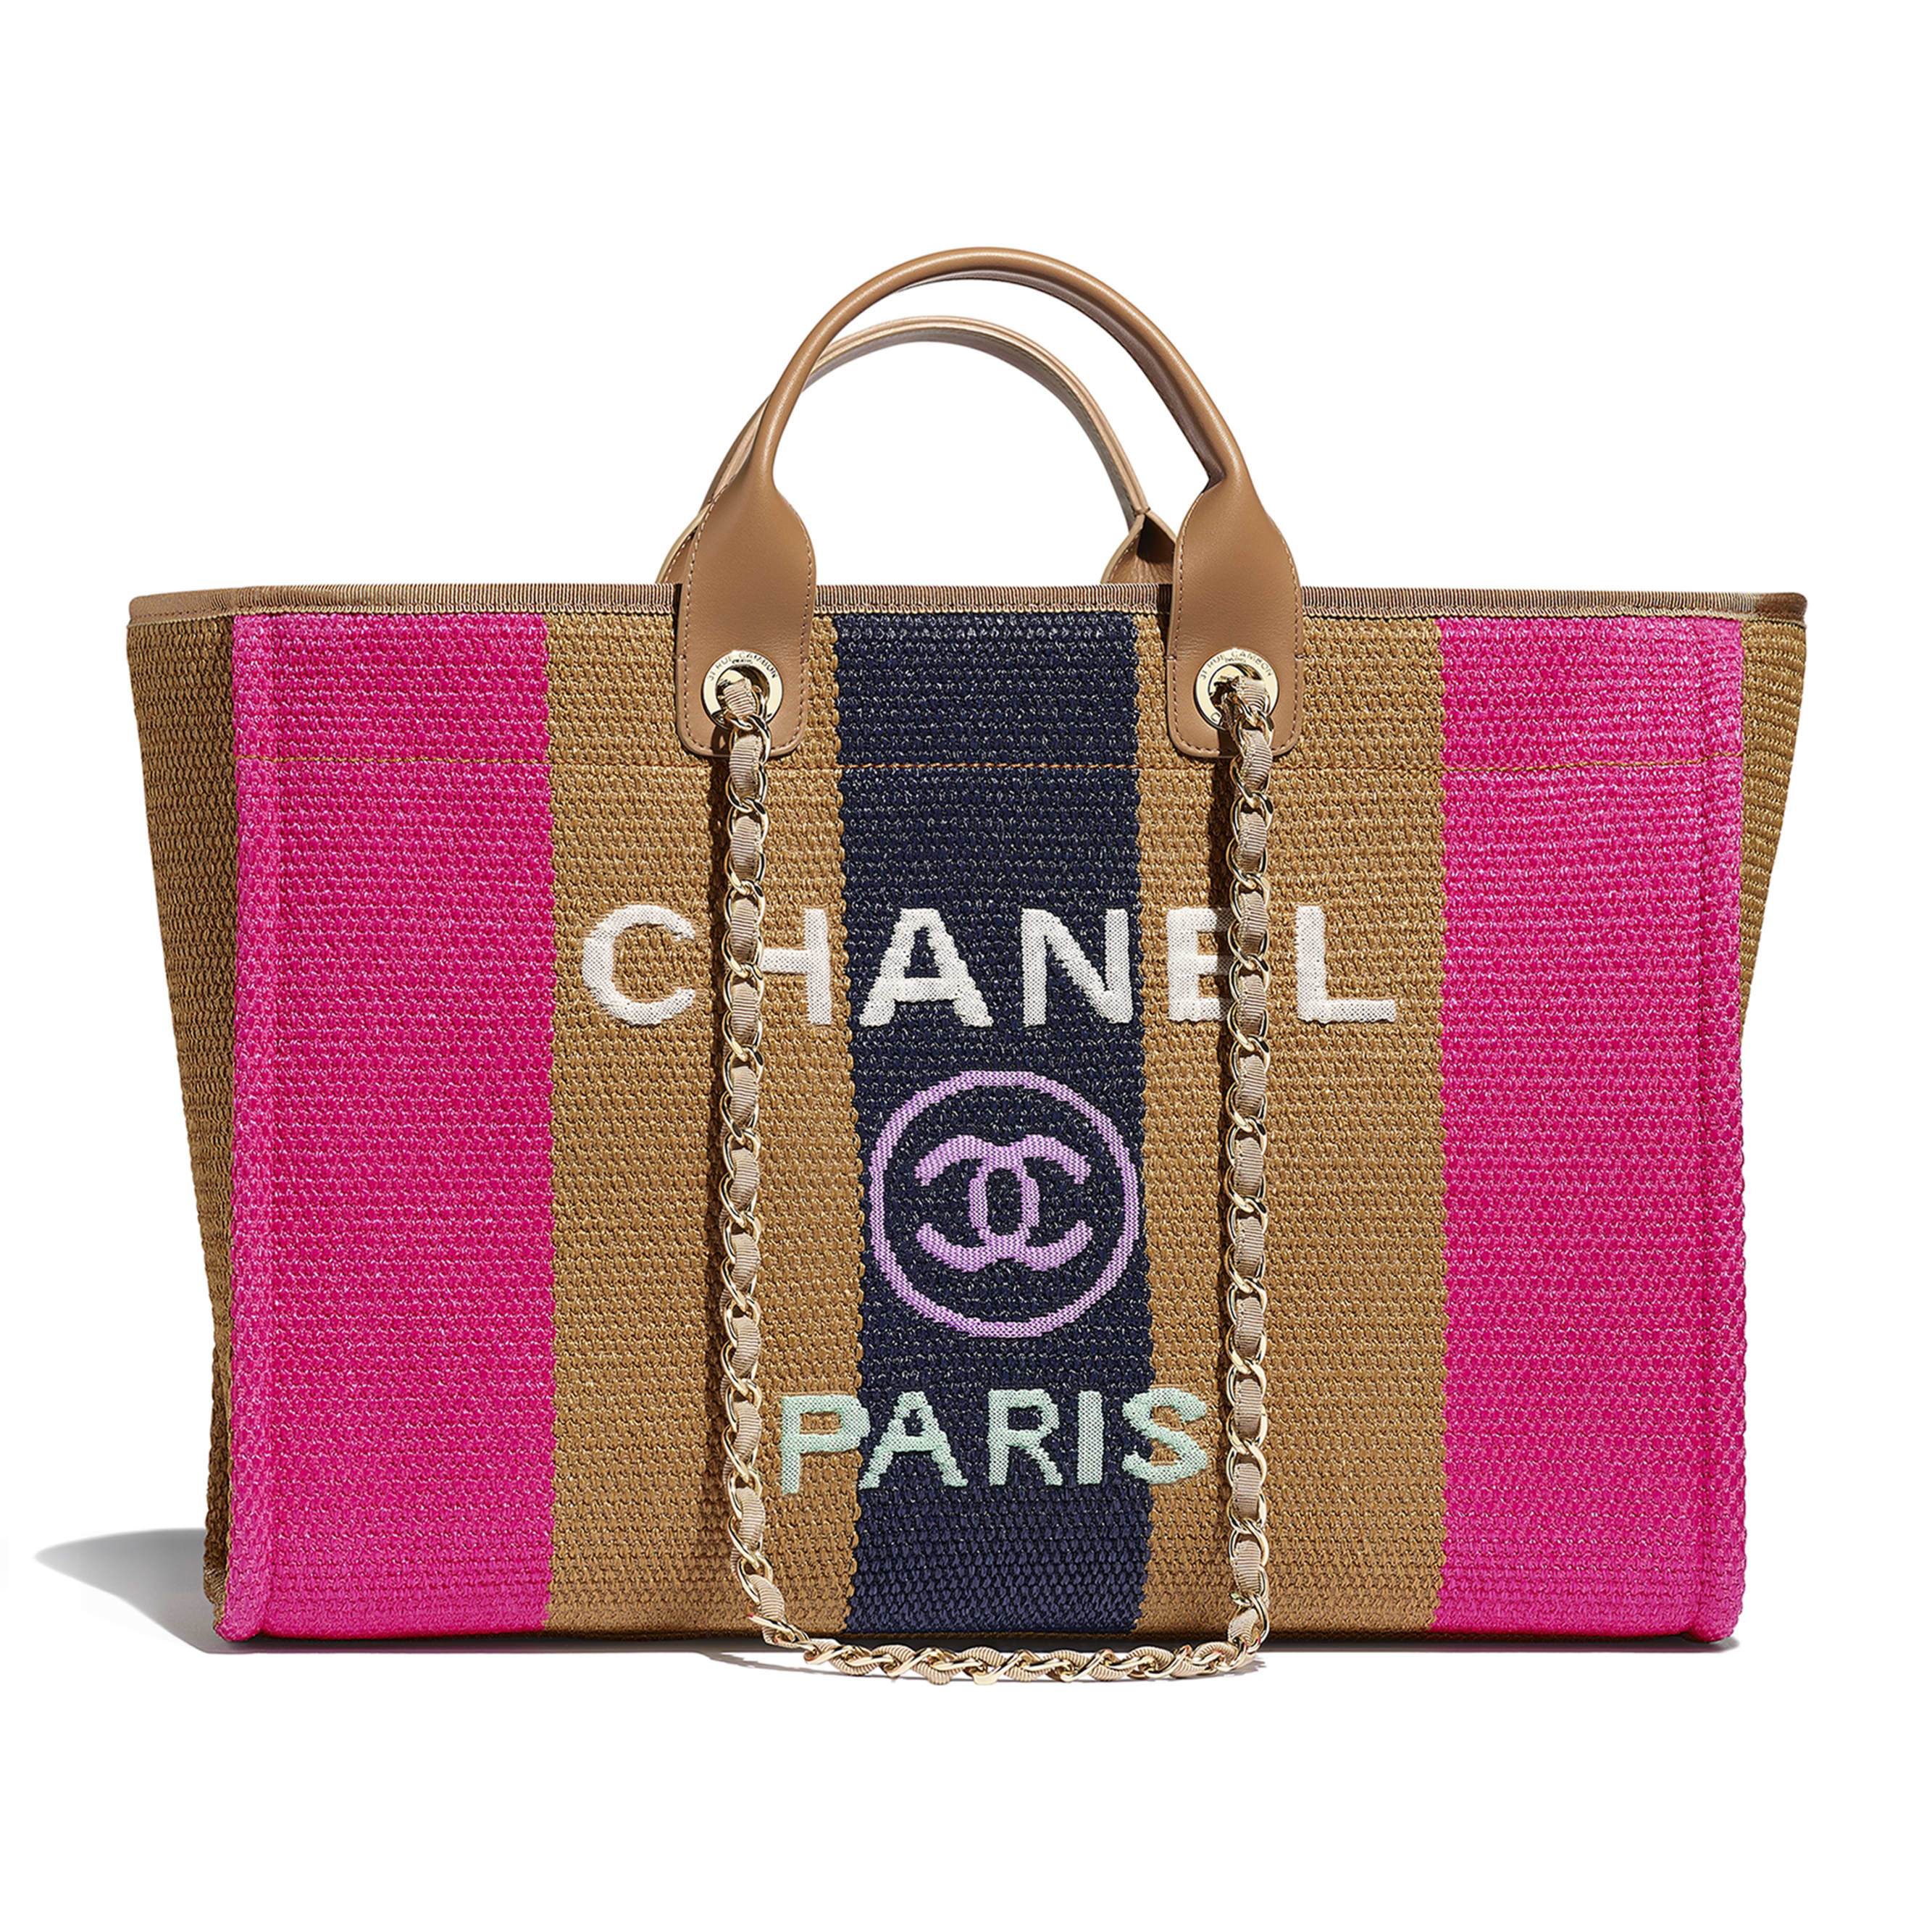 Large Tote - Dark Beige, Fuchsia & Navy Blue - Viscose, Cotton, Calfskin & Gold-Tone Metal - Default view - see standard sized version